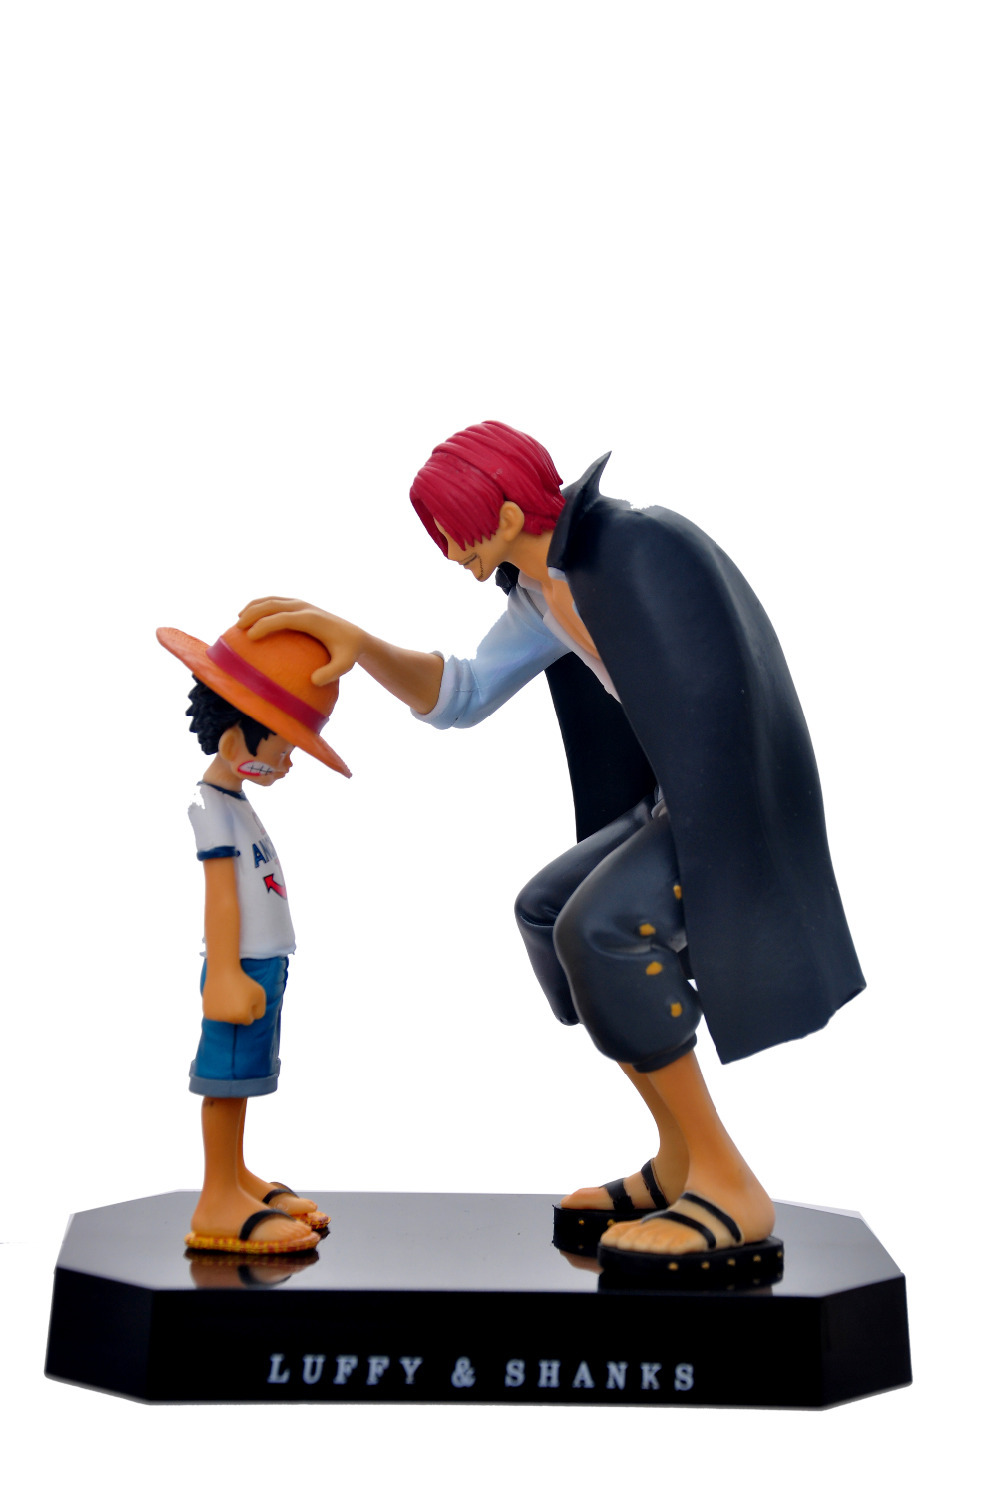 18cm One Piece Big Size Monkey D. Luffy Shanks Action Figures Anime PVC Brinquedos Collection Figures Toys